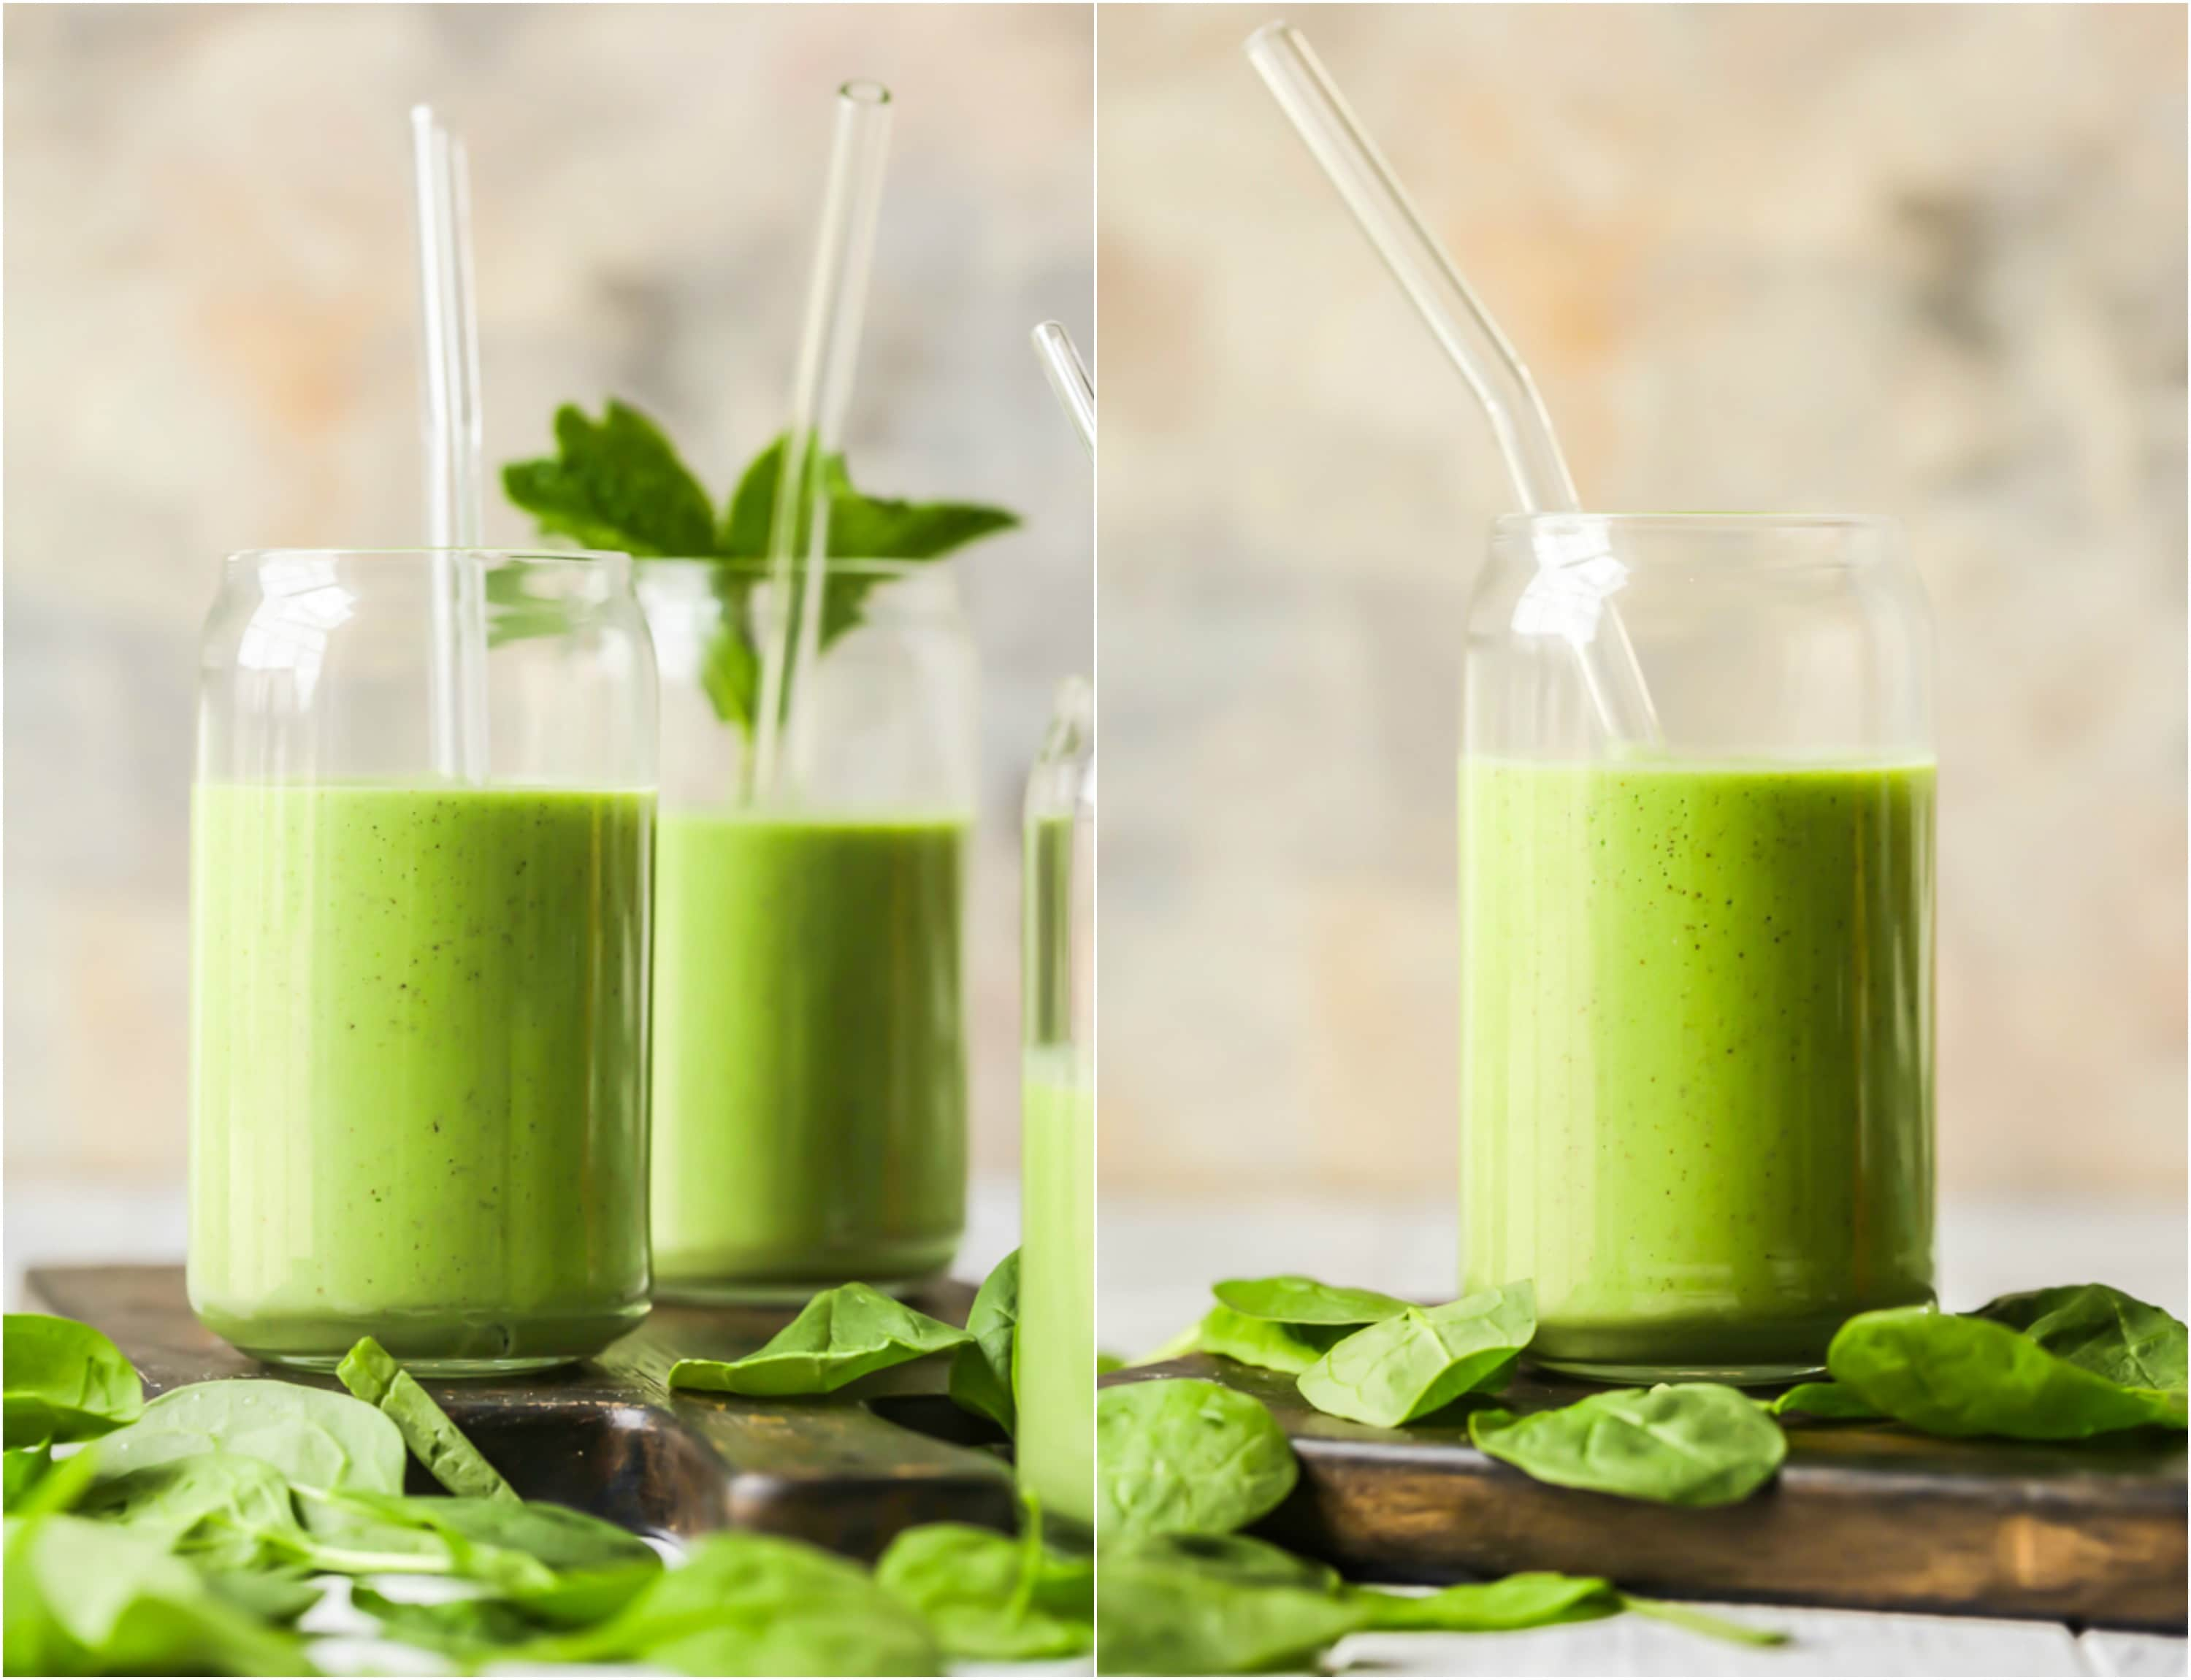 green smoothies on wooden cutting boards with baby spinach on them